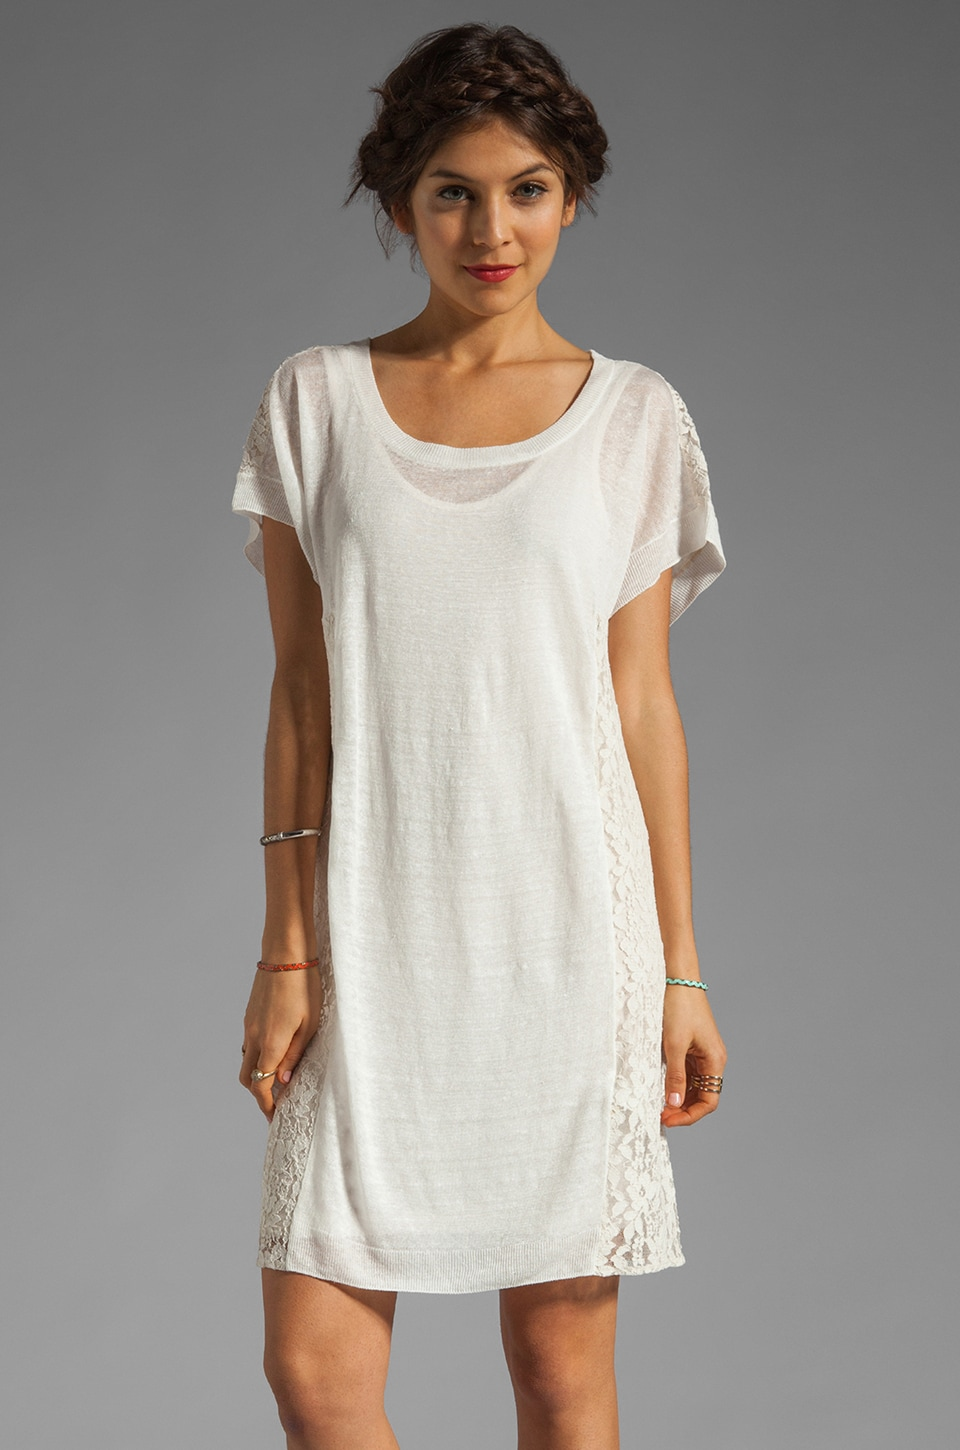 By Malene Birger Summer Item Midall Dress in Pure White and Cream